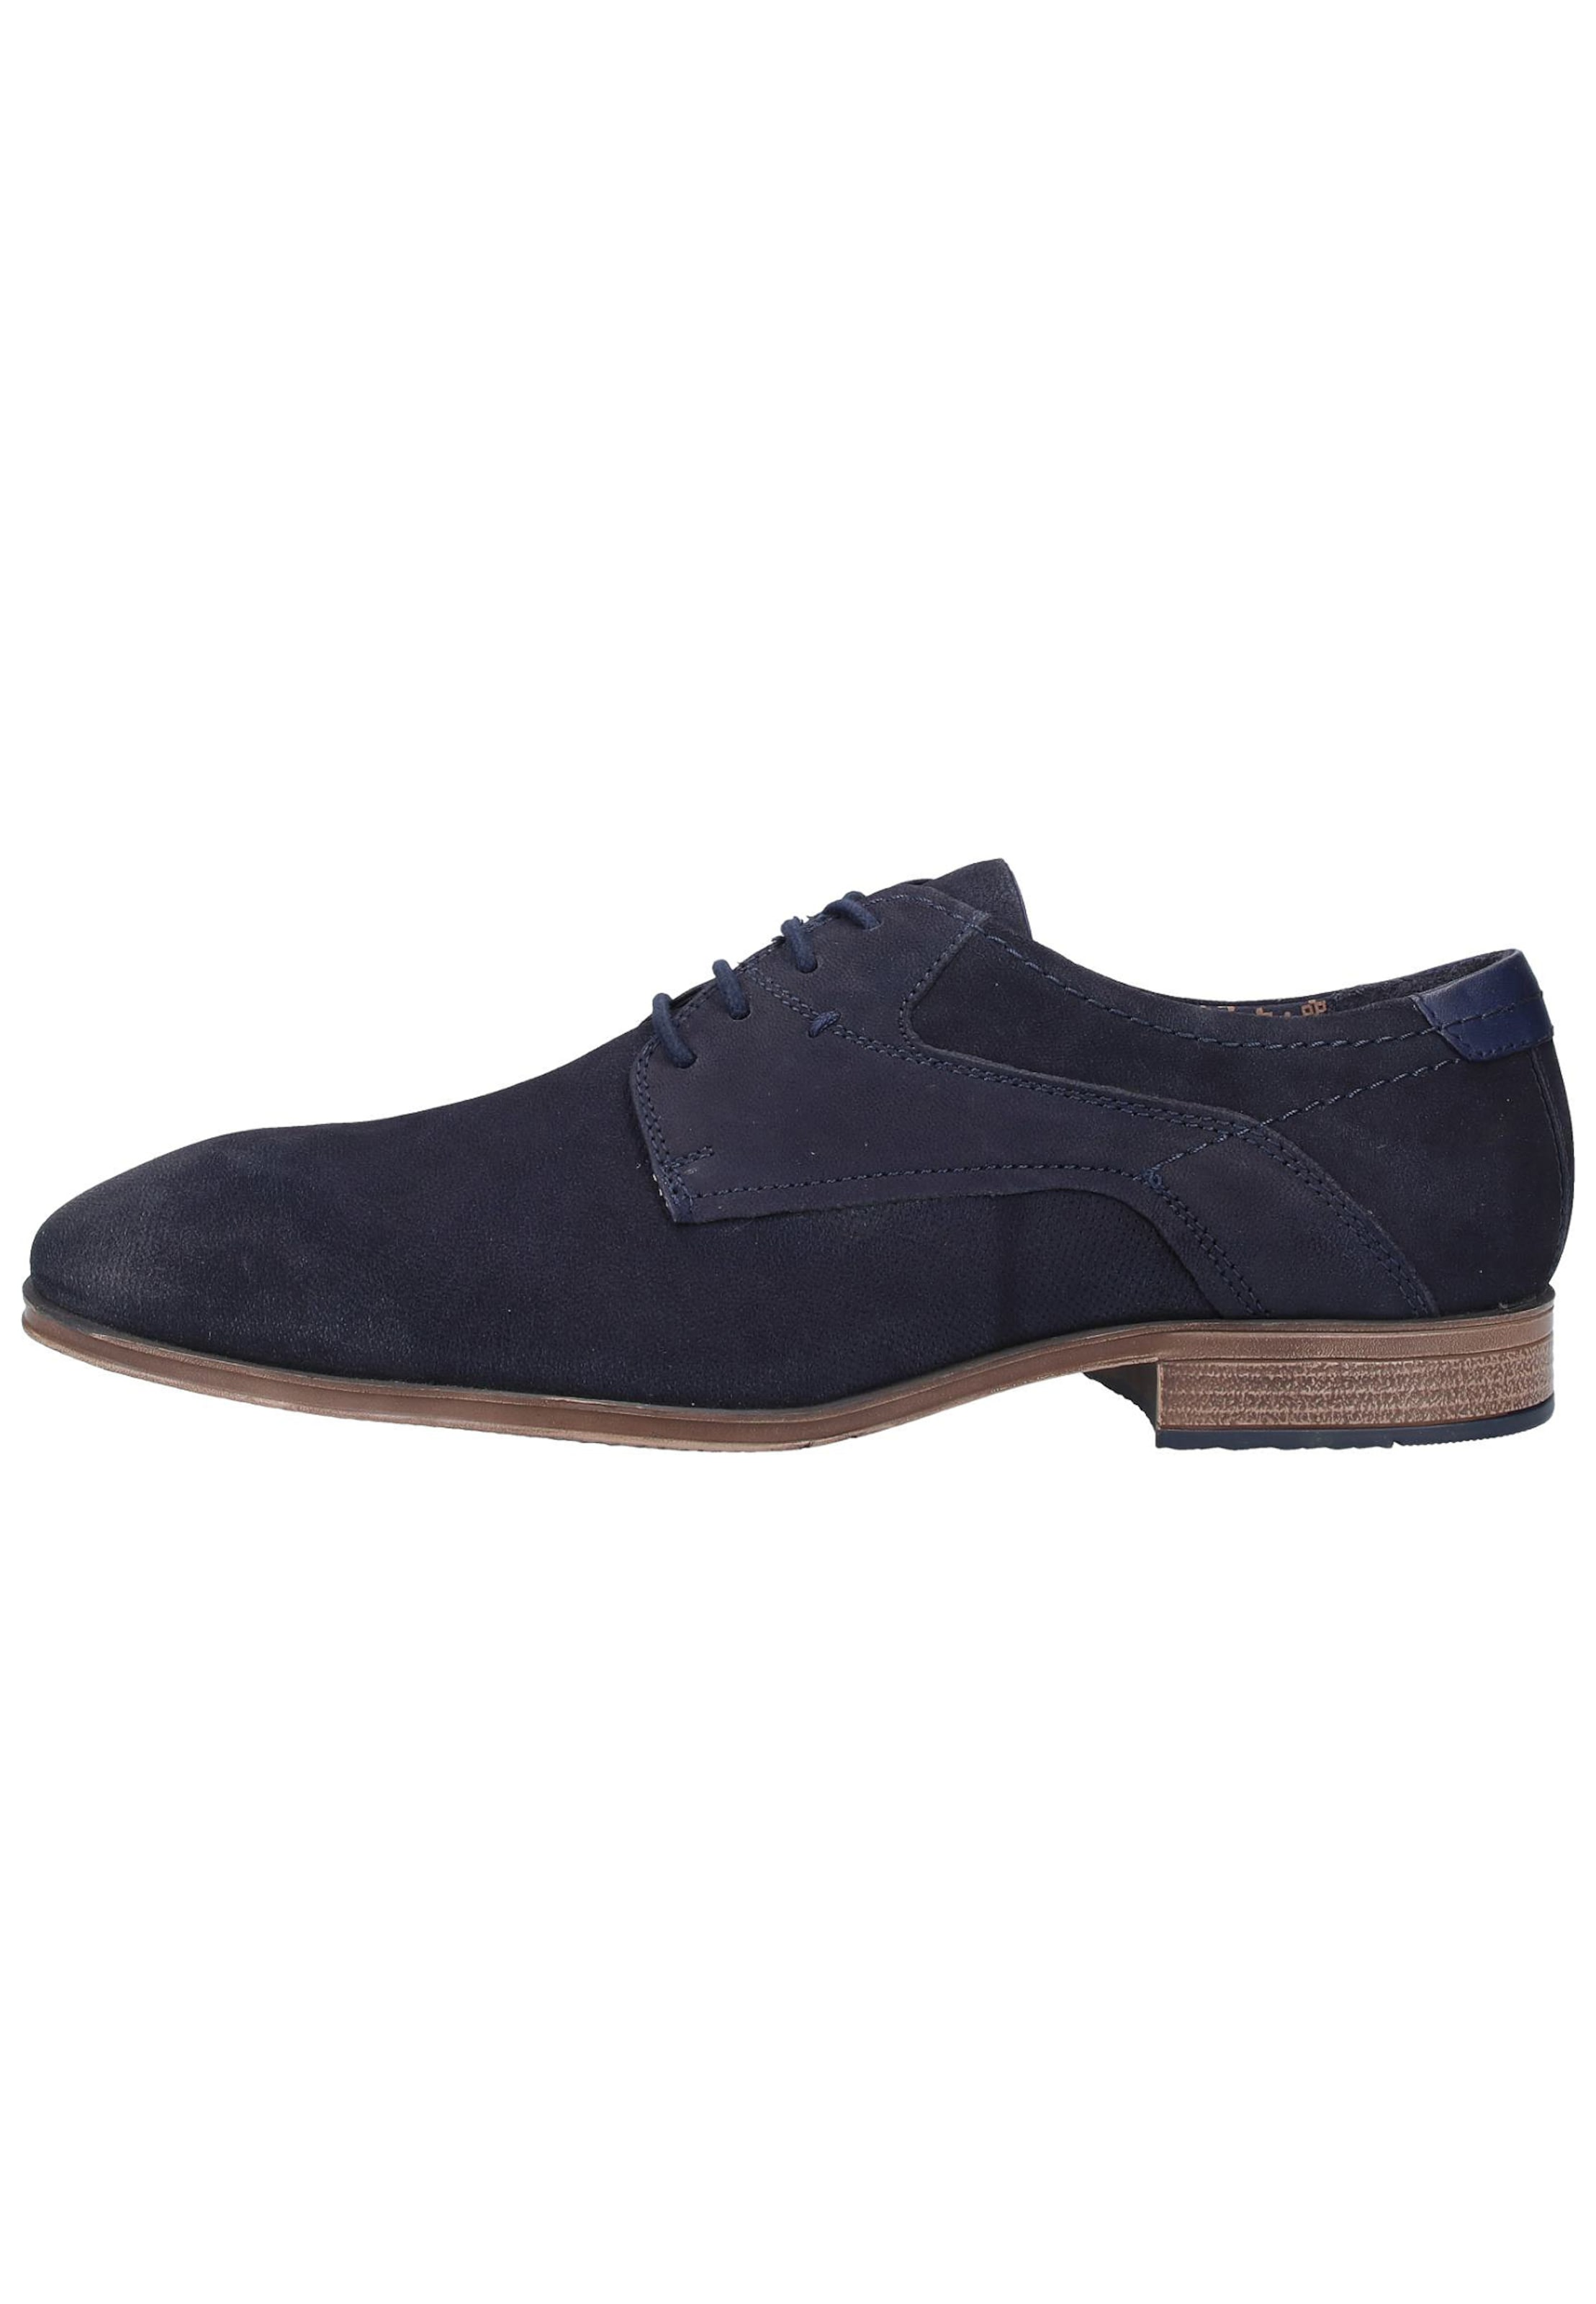 Label Halbschuhe In Navy S oliver Red cR34AjLqS5